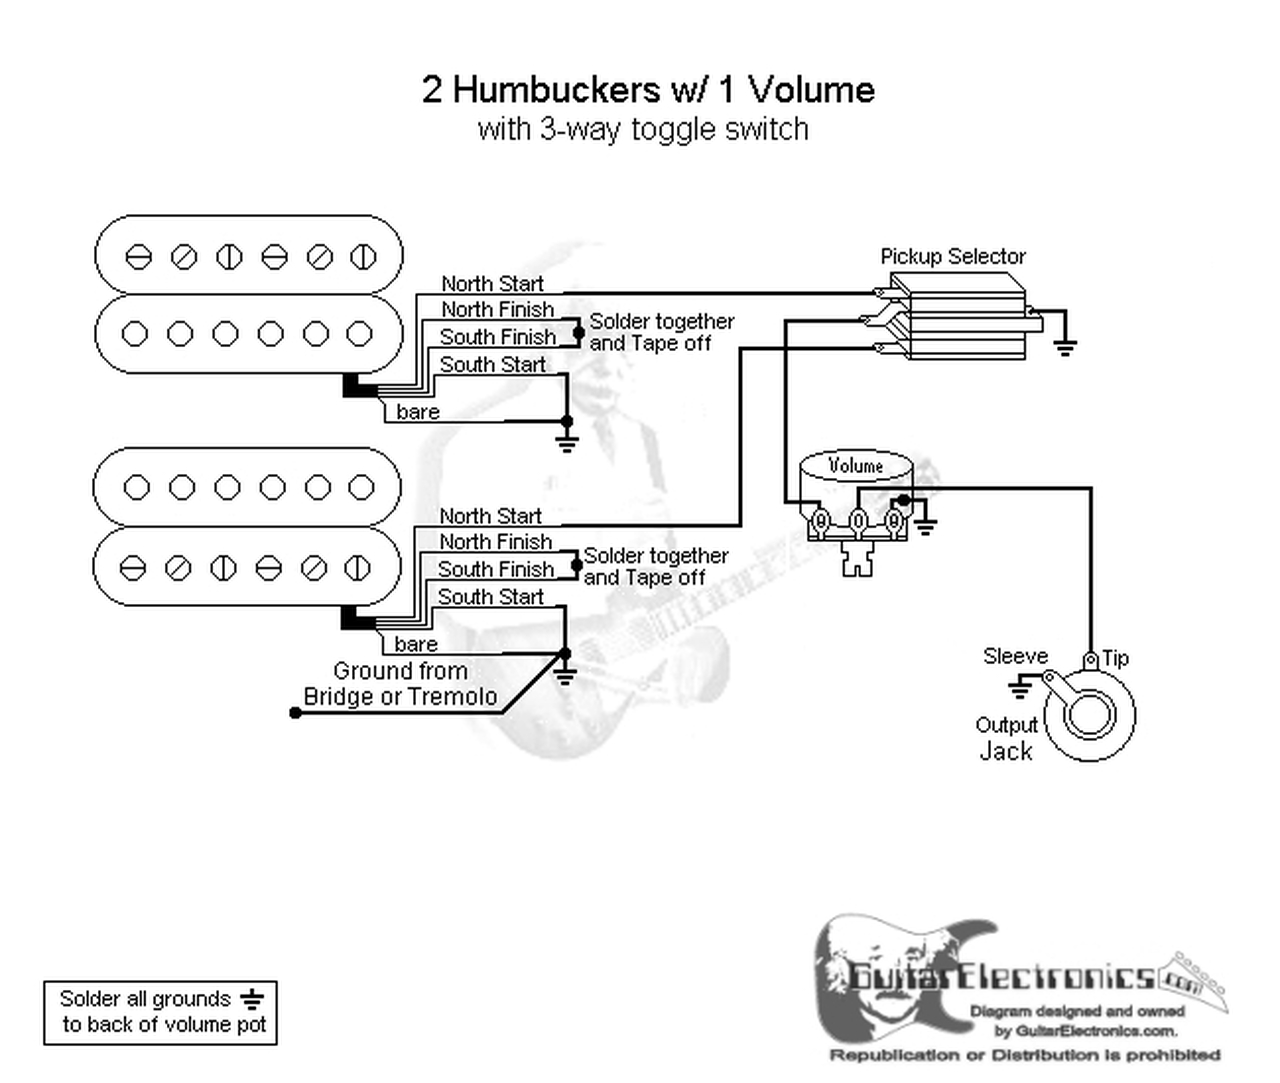 medium resolution of hum 2 pickup wiring diagrams 2 humbuckers 3 way toggle switch 1 volumewd2hh3t10 00 38554 1470694344 jpg c u003d2